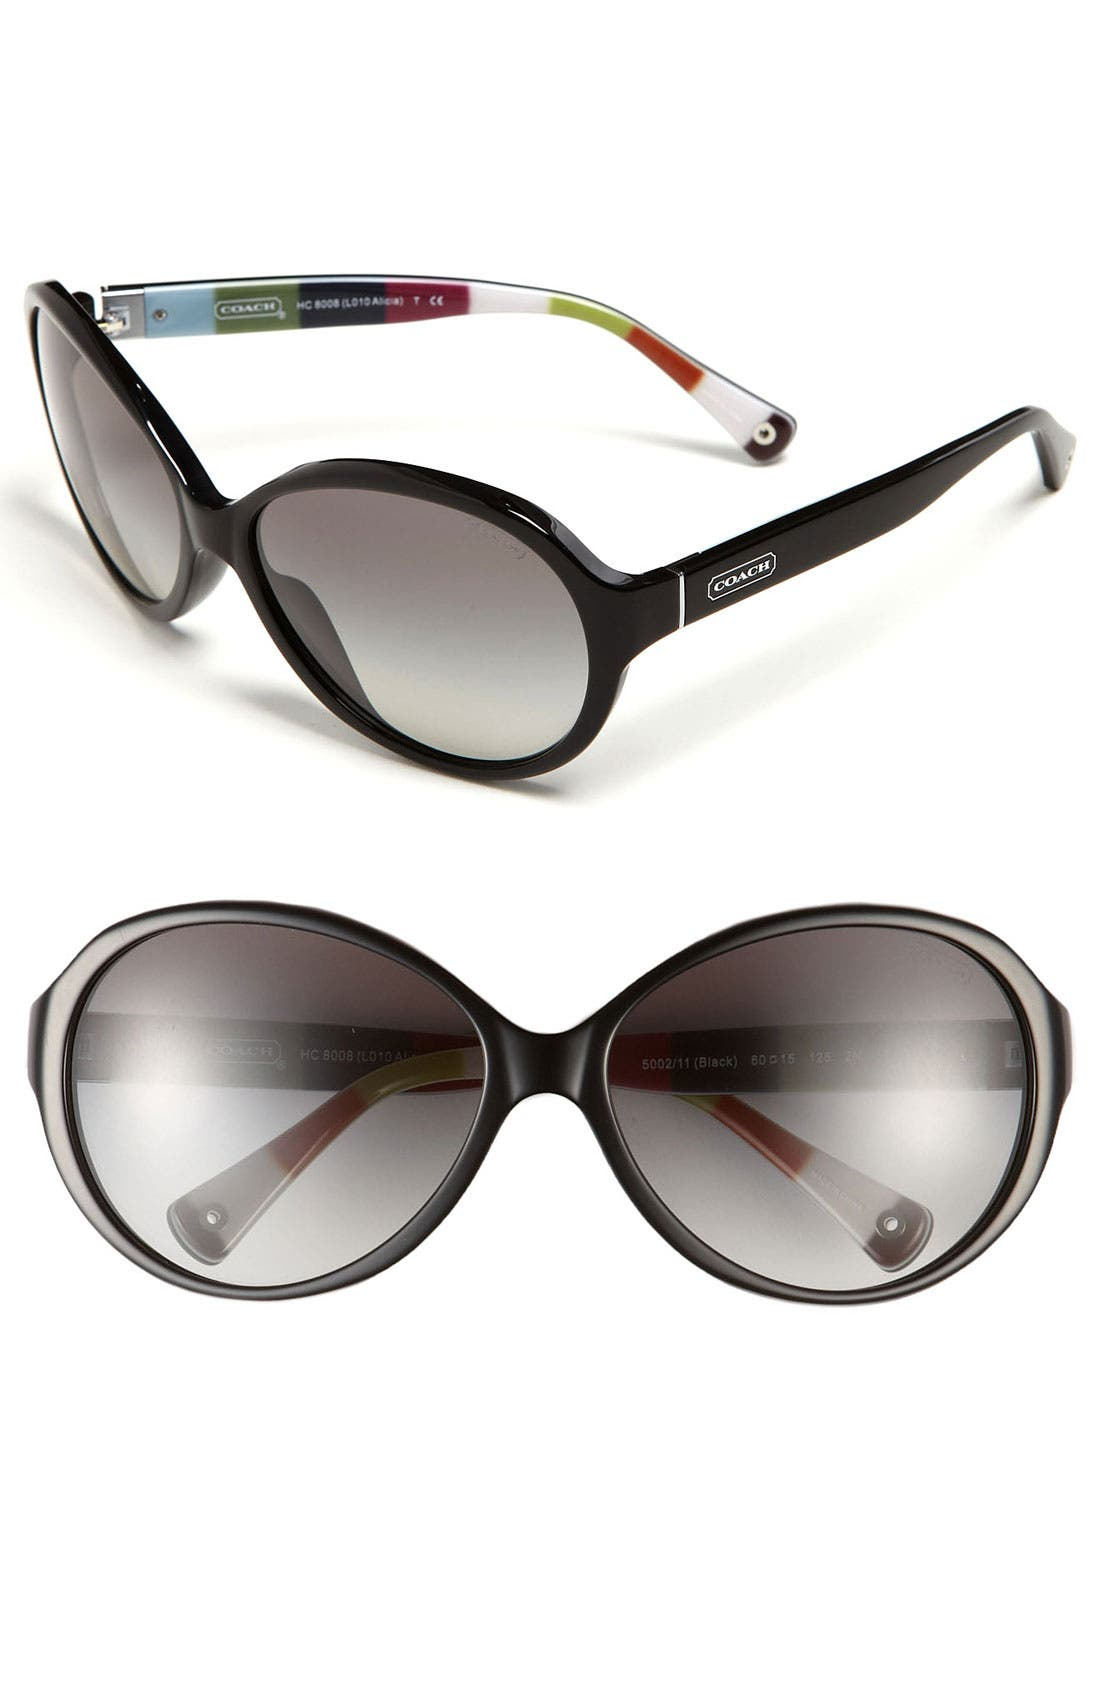 Alternate Image 1 Selected - COACH Gradient Lens Sunglasses